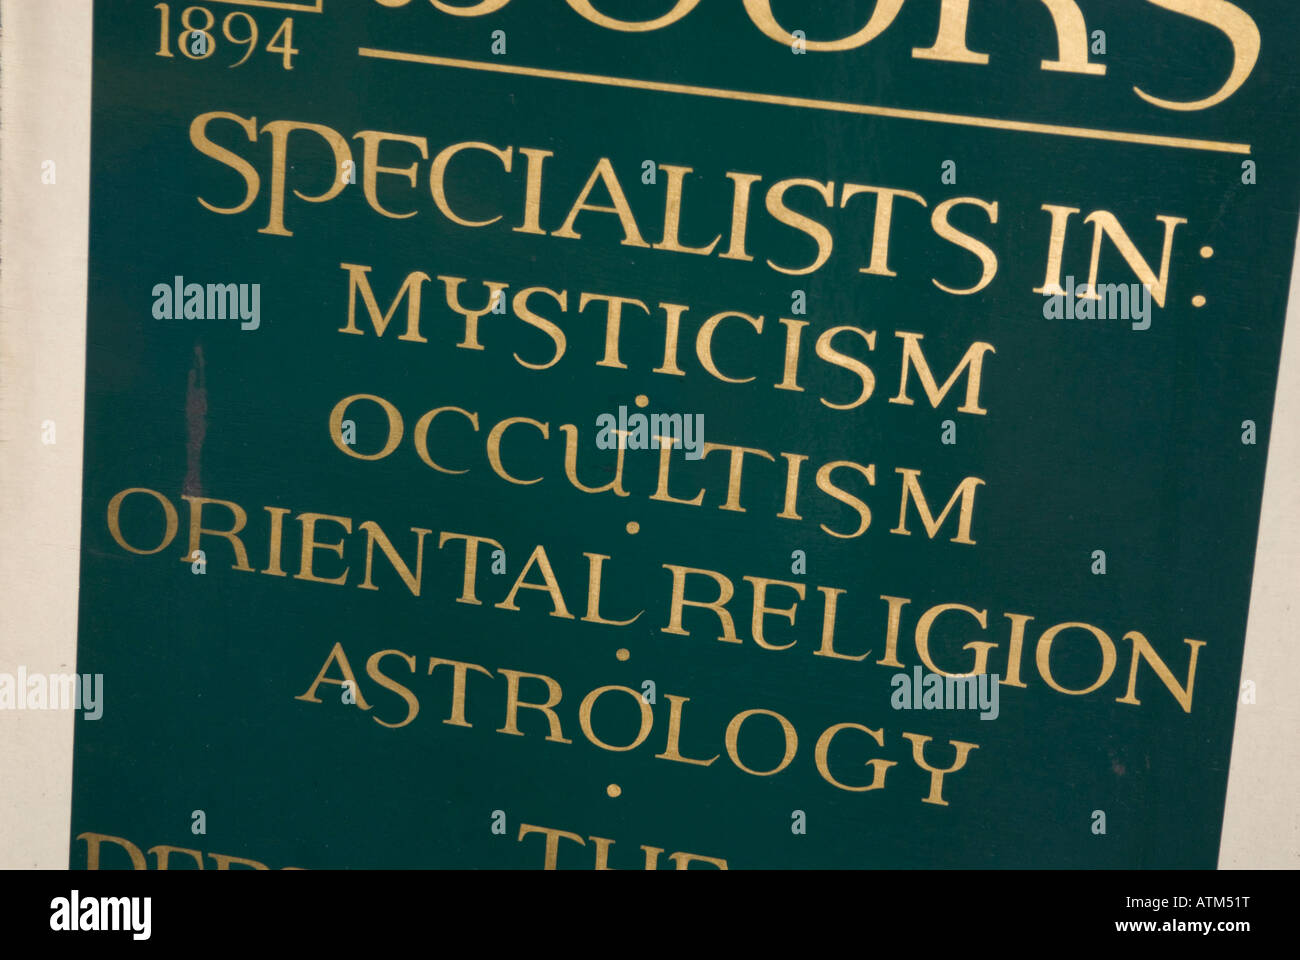 Sign for specialists in mysticism occultism religion and astrology - Stock Image